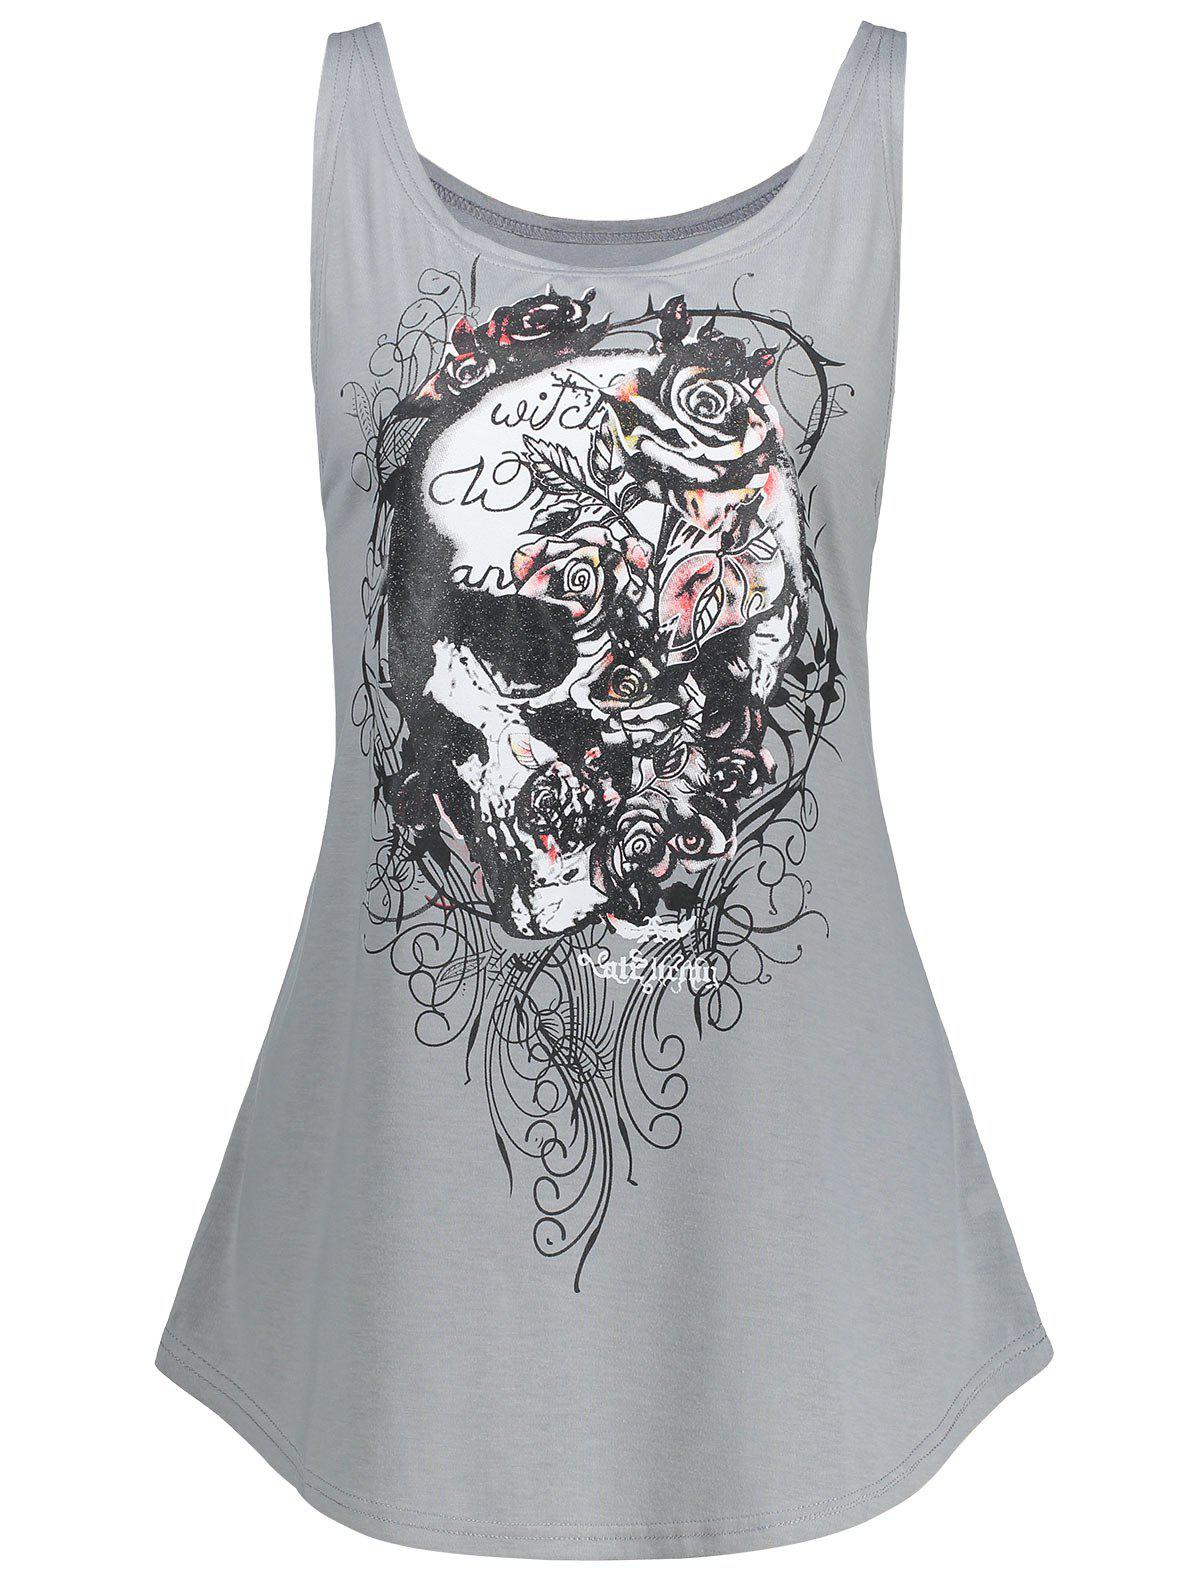 Halloween Plus Size Skull Racerback Tank TopWOMEN<br><br>Size: 5XL; Color: GRAY; Material: Polyester,Spandex; Shirt Length: Long; Sleeve Length: Sleeveless; Collar: Scoop Neck; Style: Fashion; Season: Fall,Spring,Summer; Pattern Type: Skulls; Weight: 0.2000kg; Package Contents: 1 x Top;